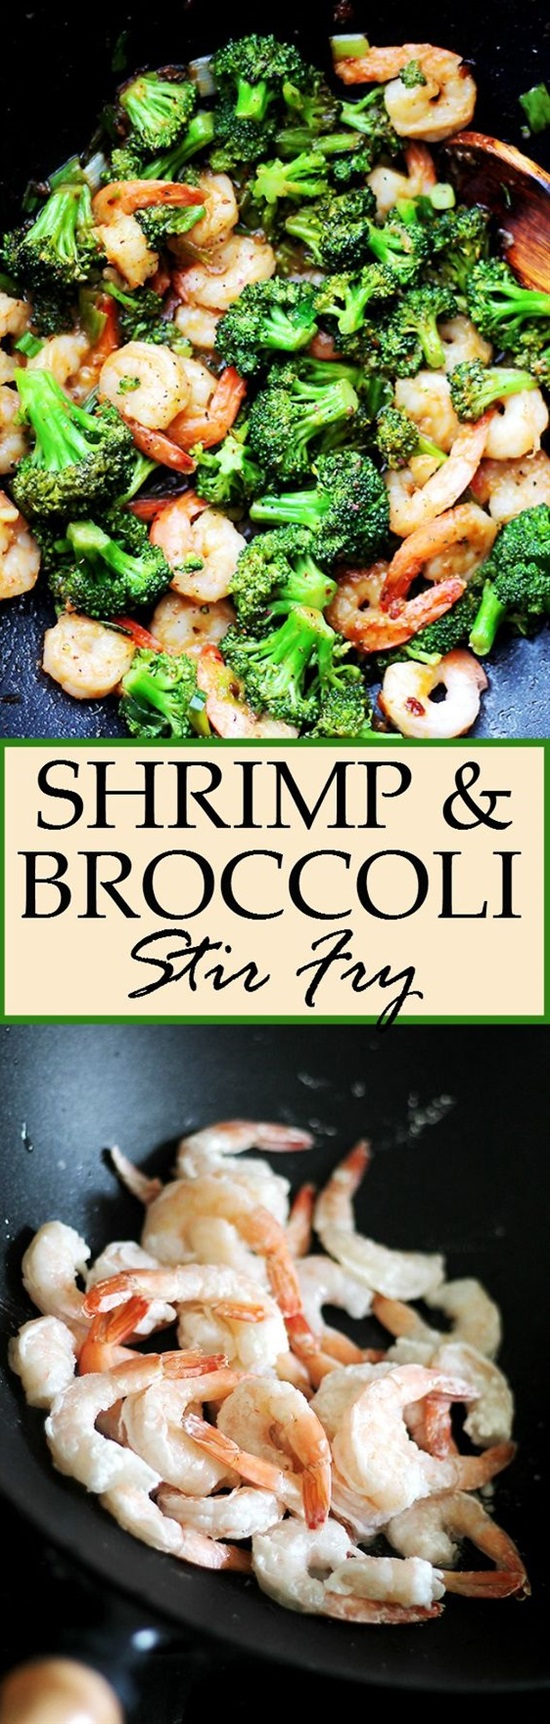 15 Easy Shrimp Recipes for Weeknight Dinners